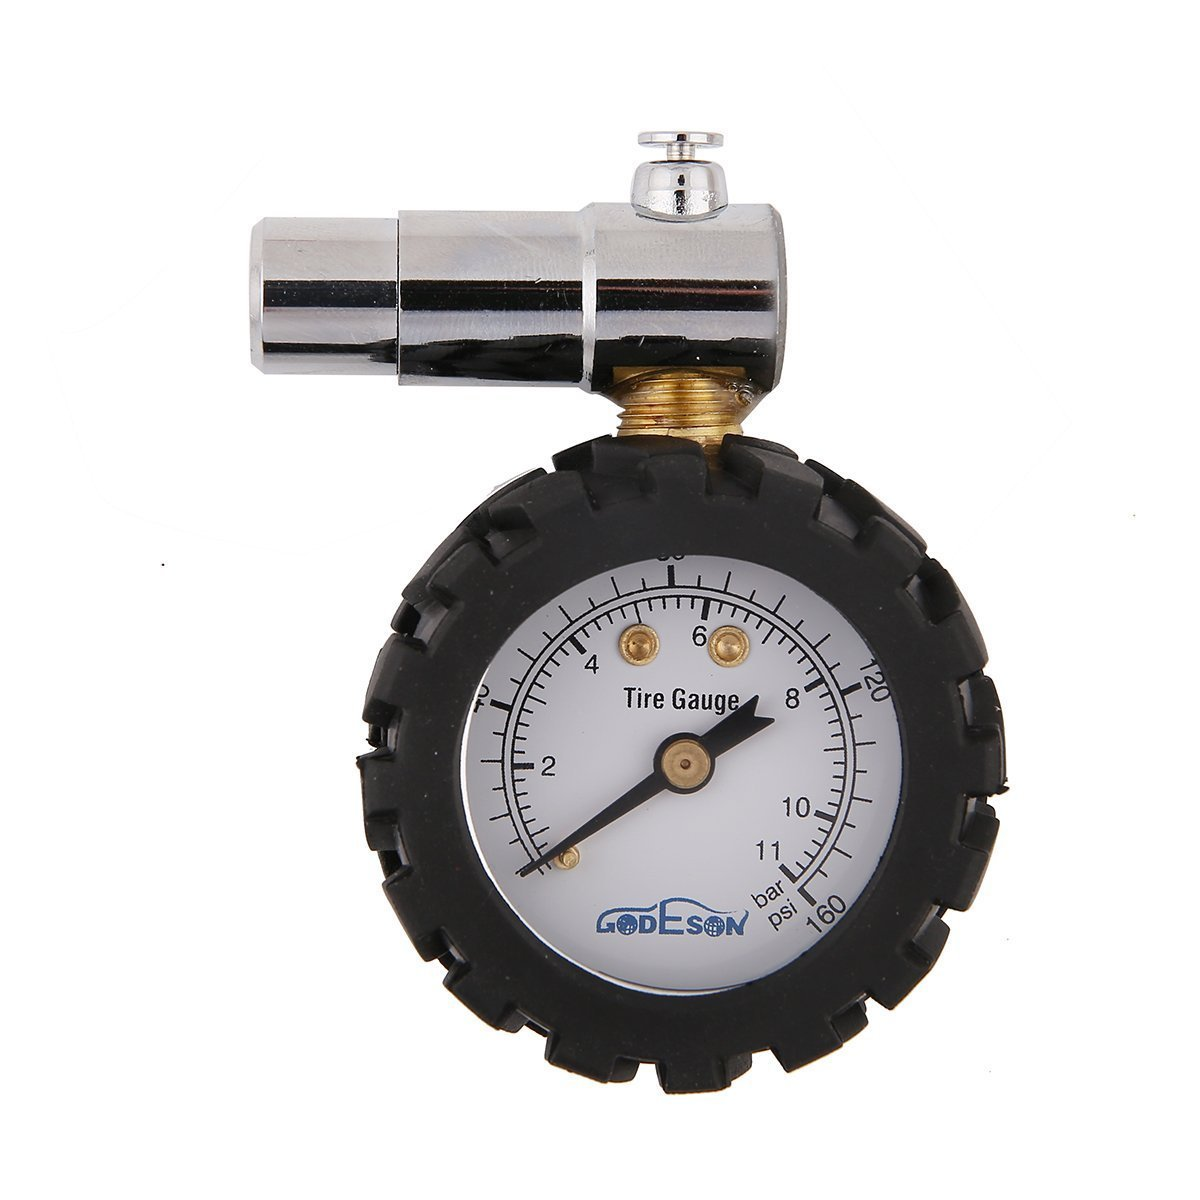 Godeson Smart Bike Tire Pressure Gauge 0-160psi,Dual Scale with 0-11bar, Professional for Presta Valves of Bicycle Tire presta valve tire gauge GD005B